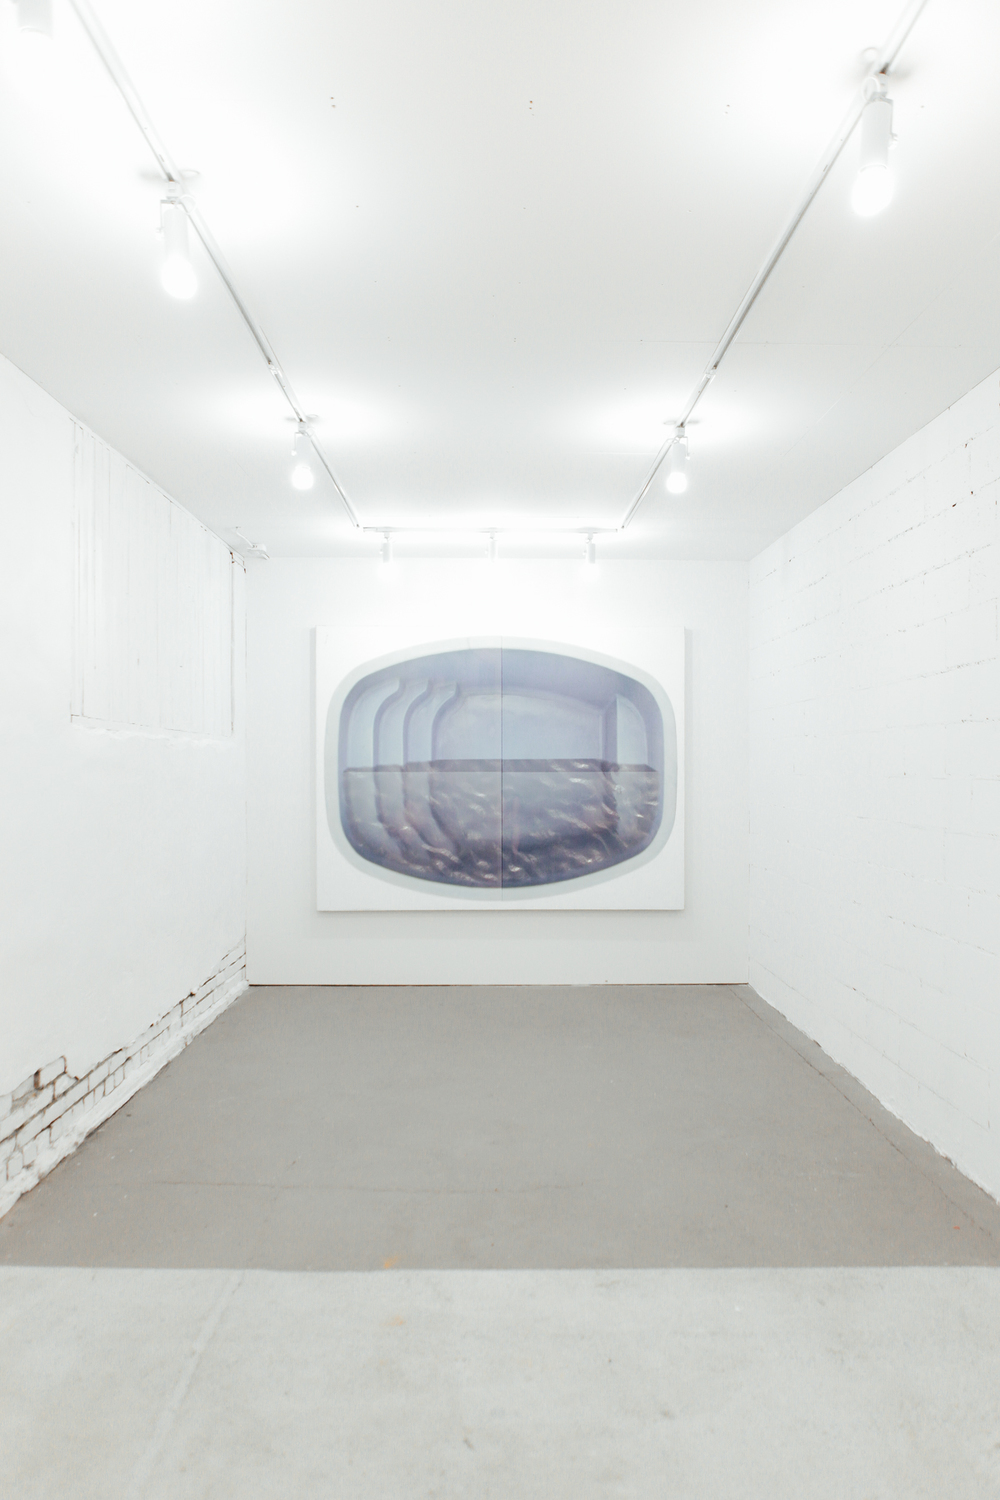 Aaron Koehn,  swimming pool,  UV cured ink on canvas, 2014. Installation image by Luis Valdizon.